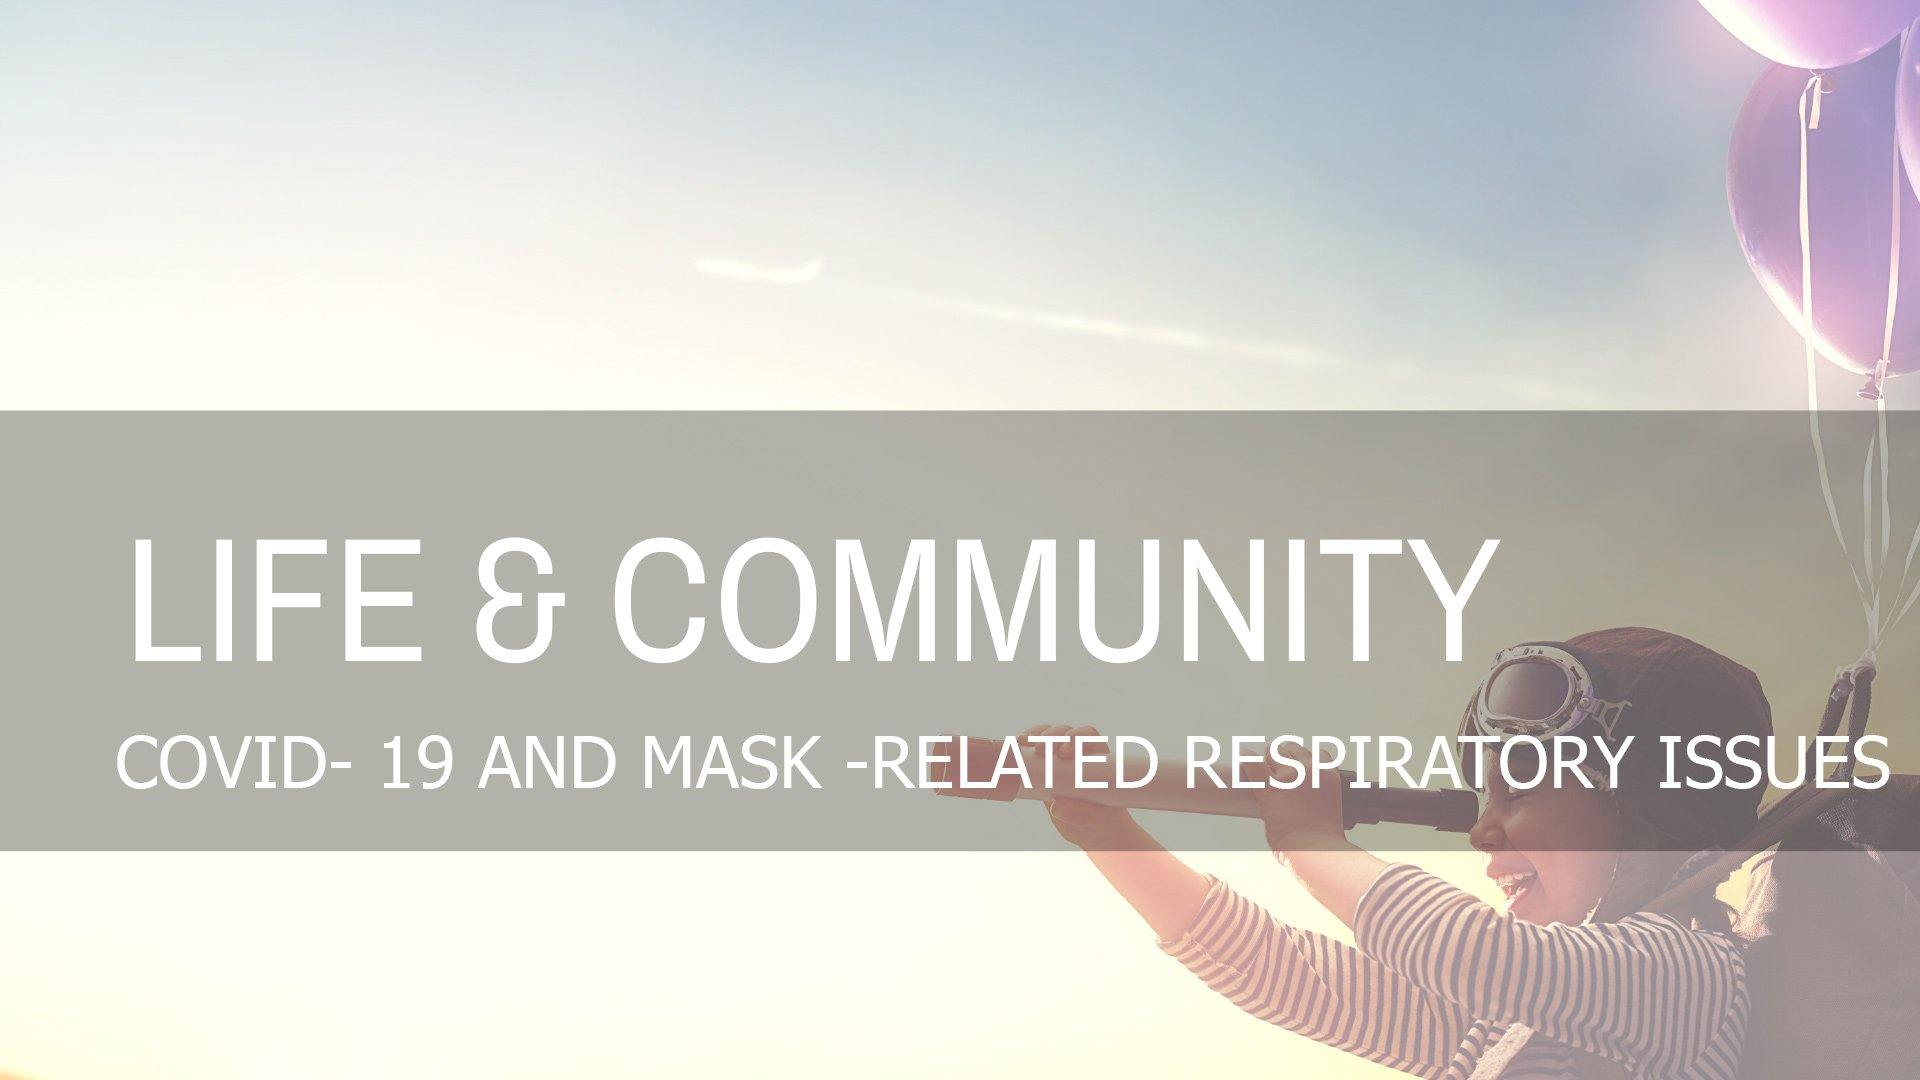 COVID-19 and Mask-Related Respiratory Issues